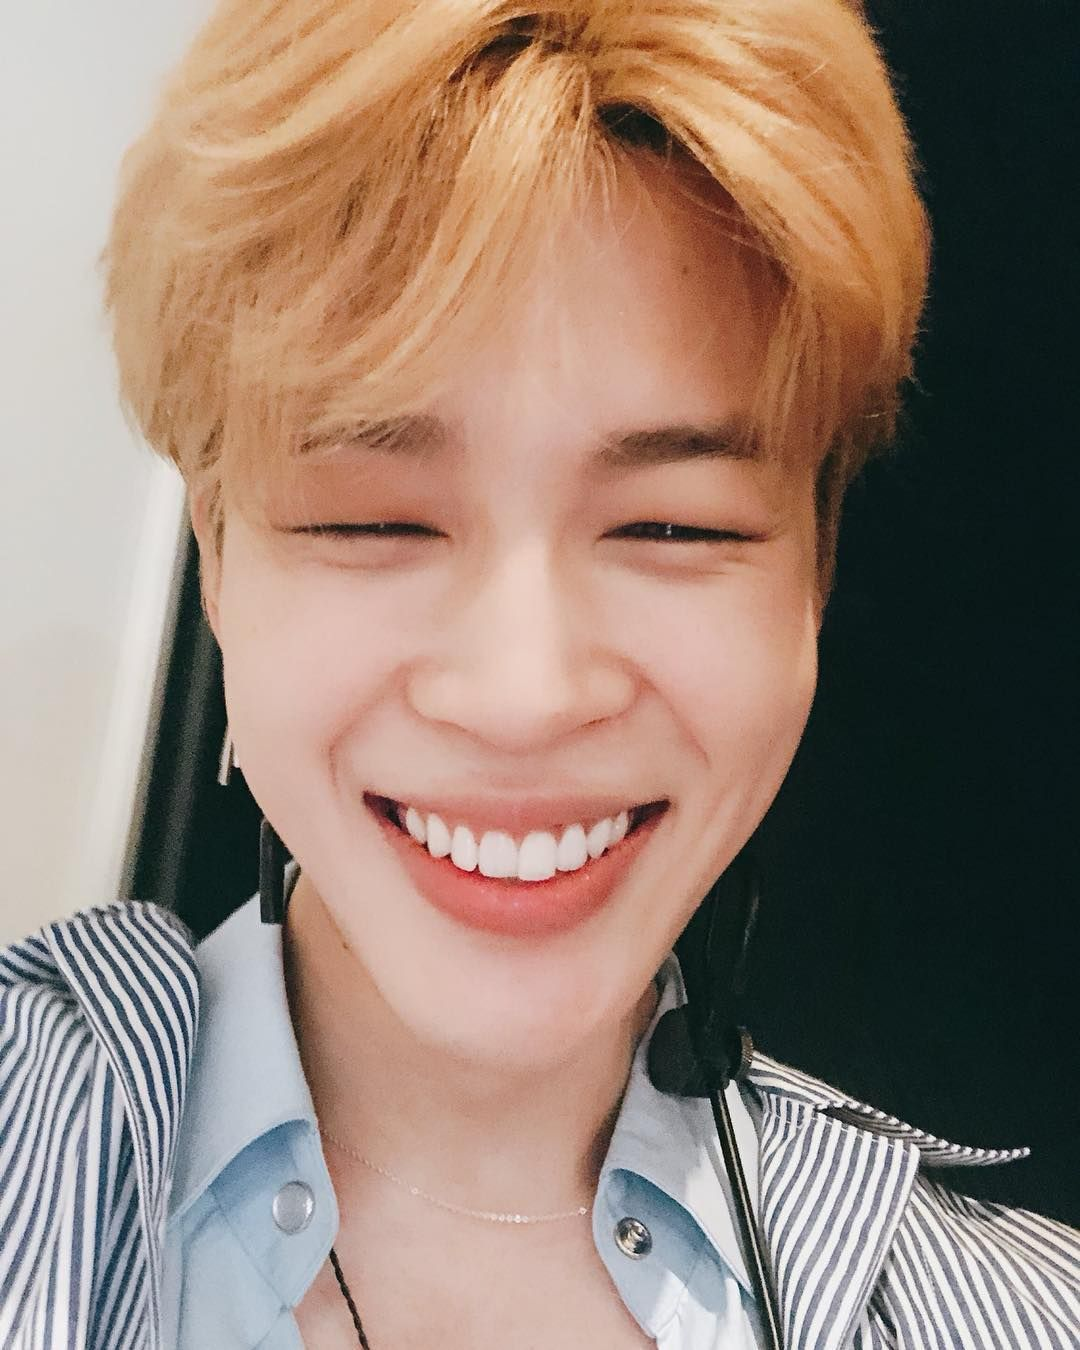 Seeing His Eye Smiles Just Makes My Day I Dont Know Why And How